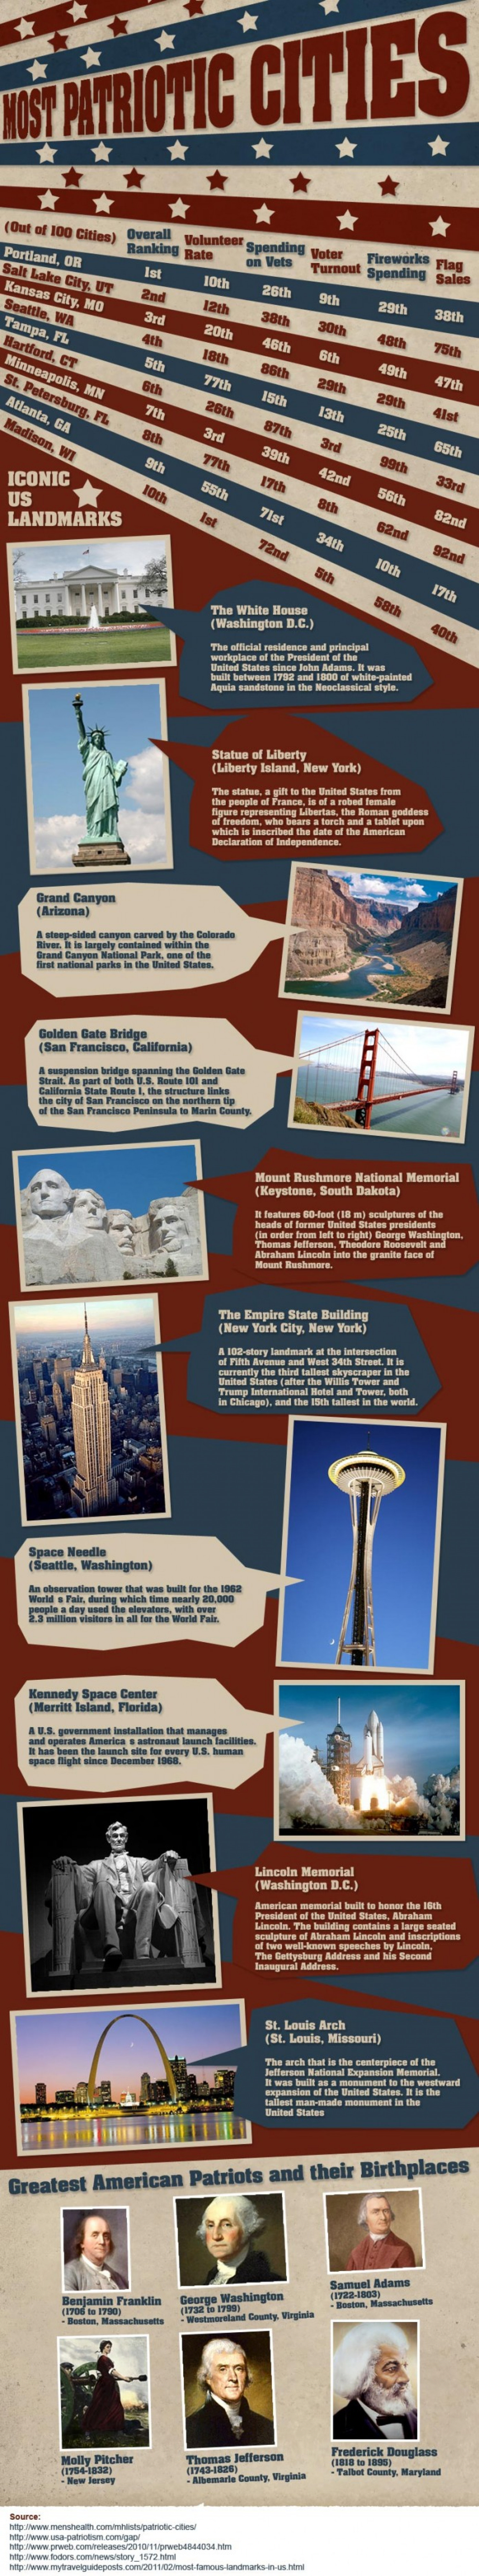 Most Patriotic Cities of USA Infographic